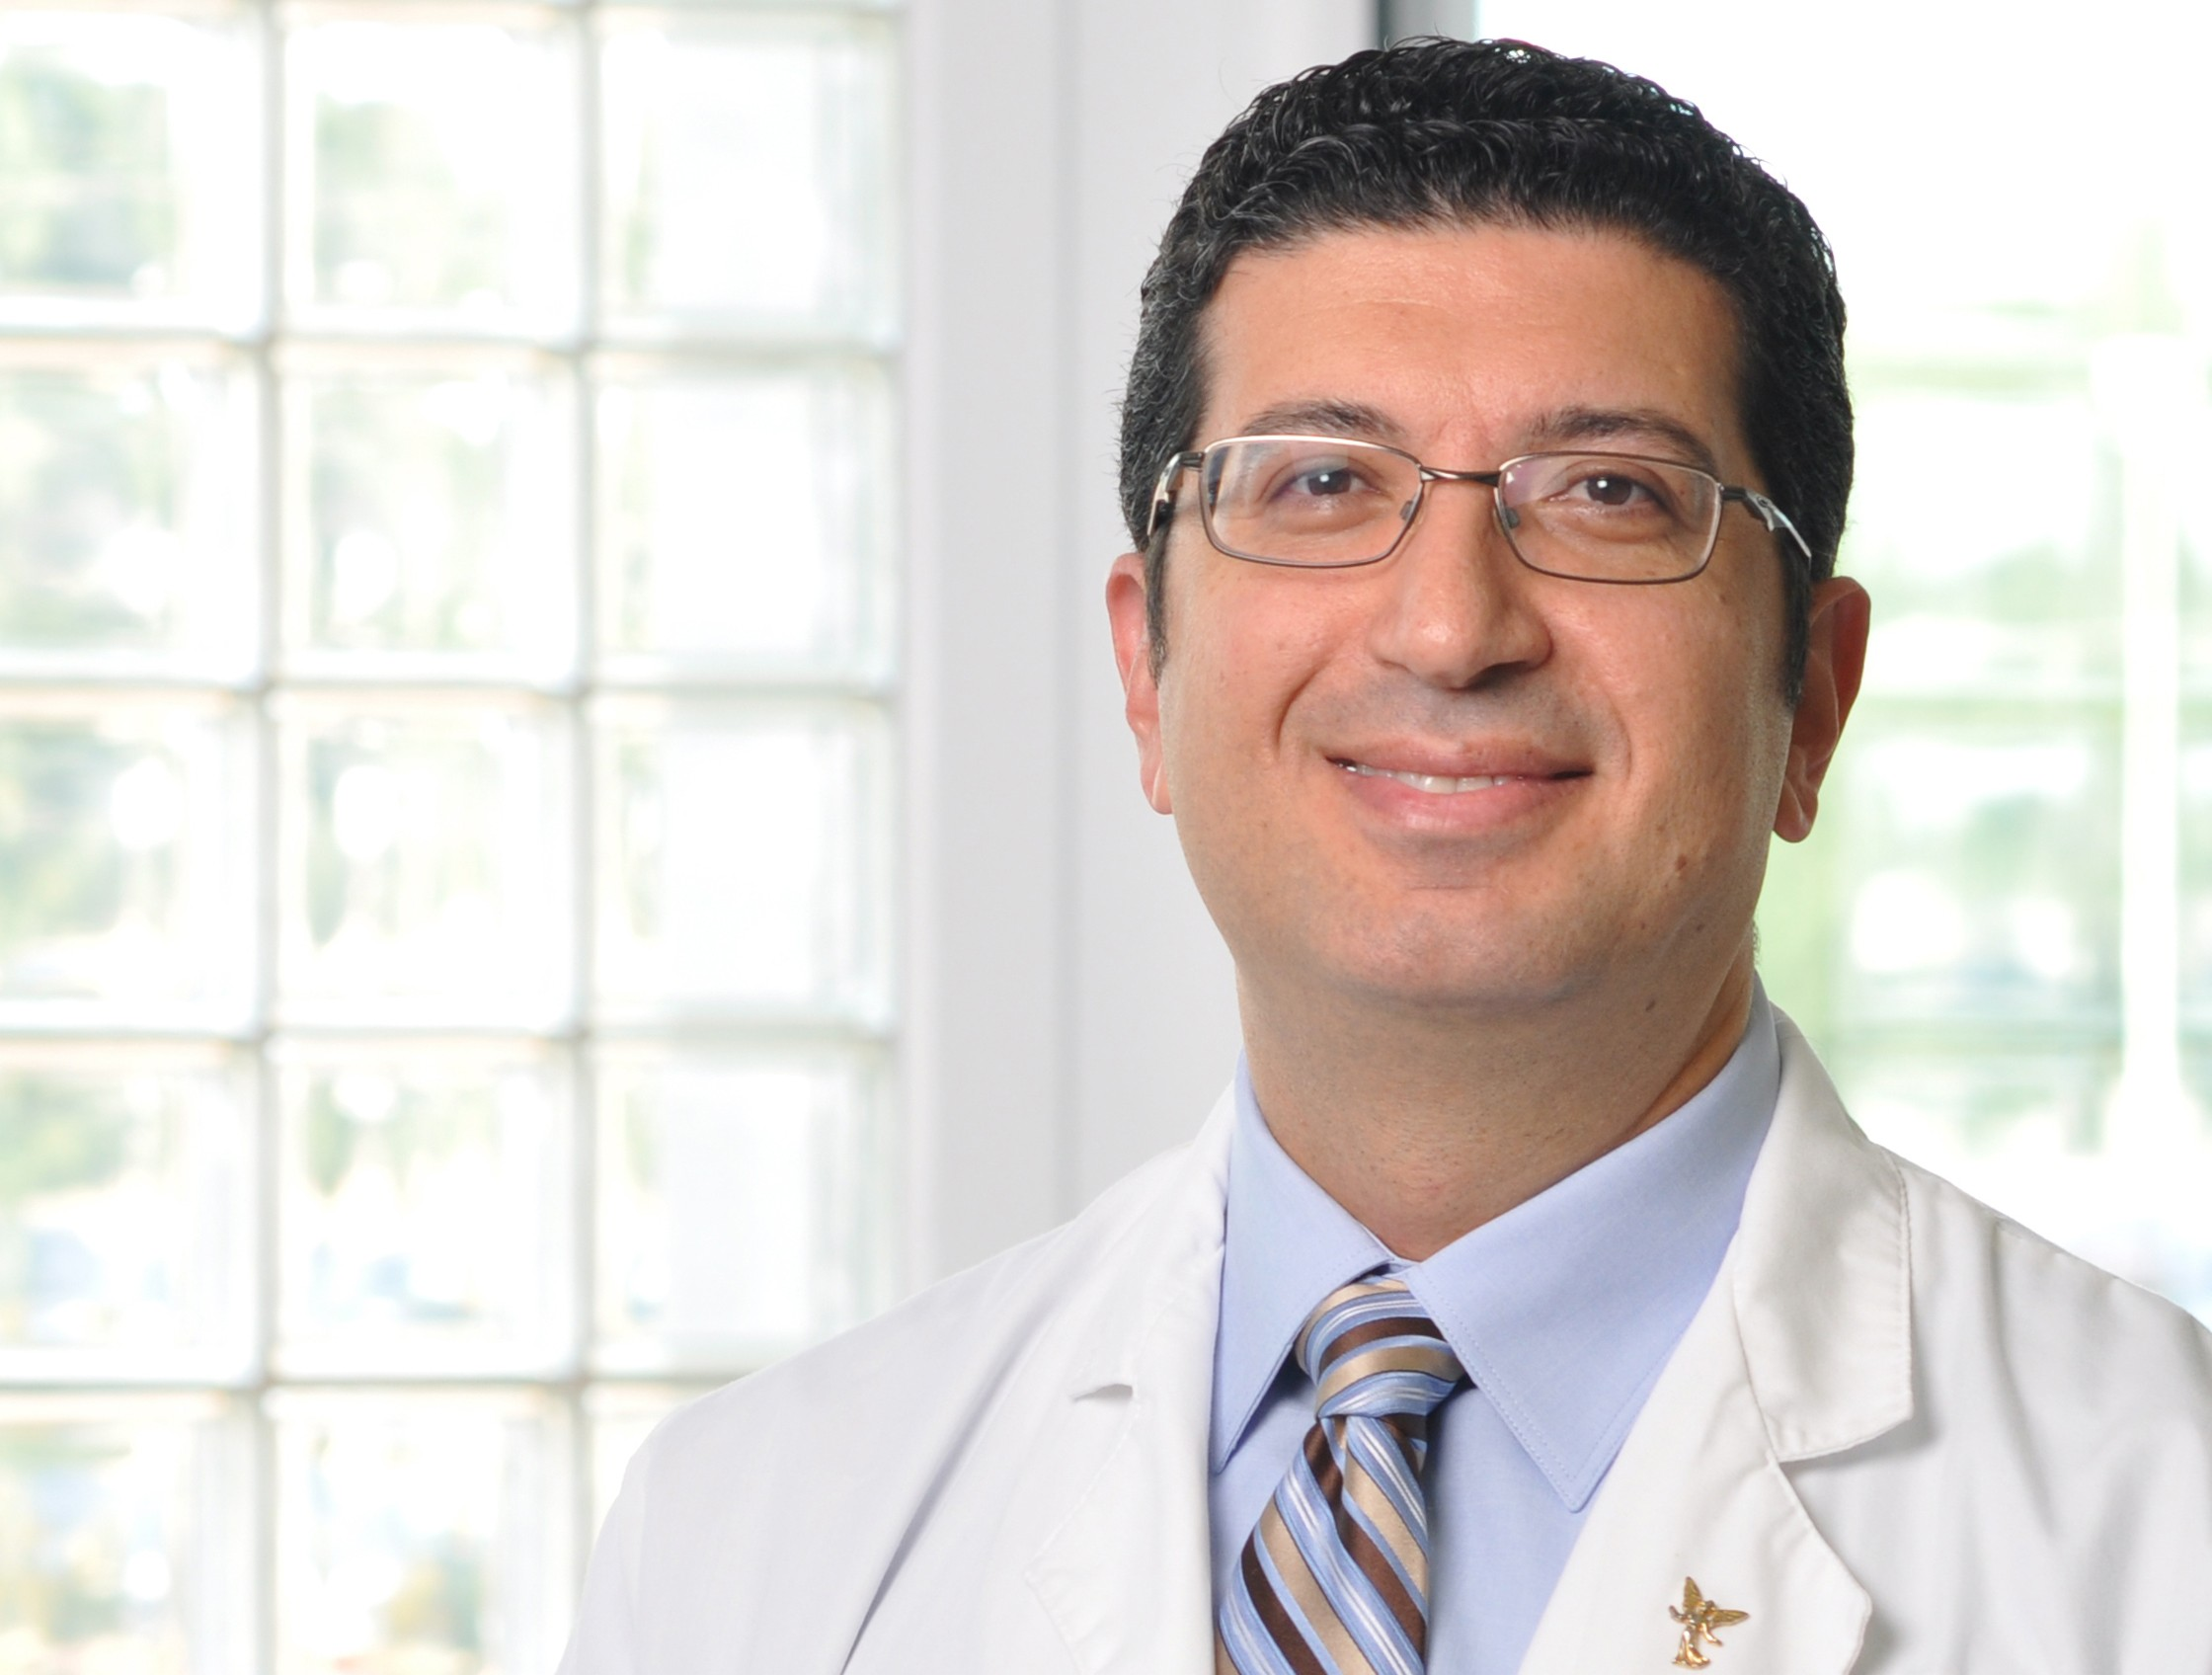 Dr. Bassam Roukoz is the medical director for cardiovascular care at Mercy Hospital Jefferson.